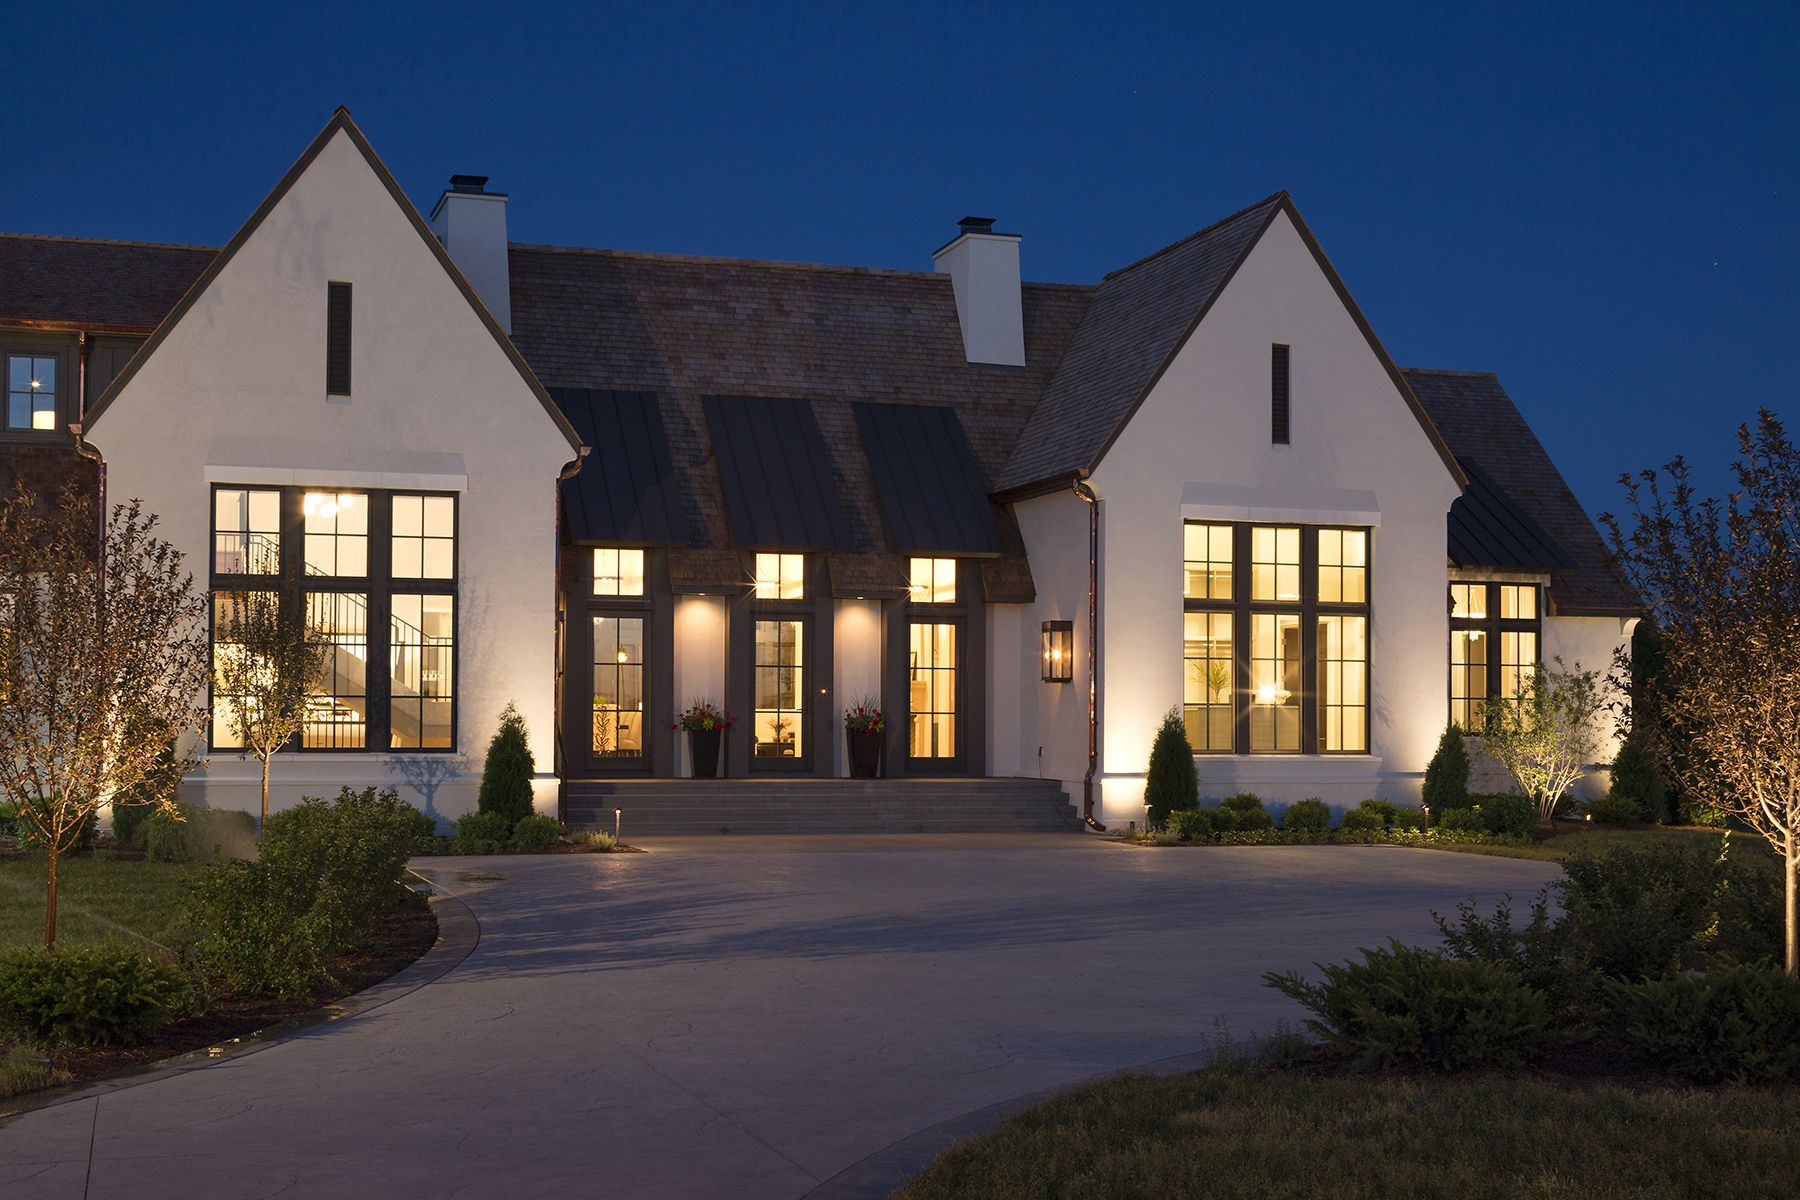 Modern Tudor Style Home With Black Windows And Exterior Accents